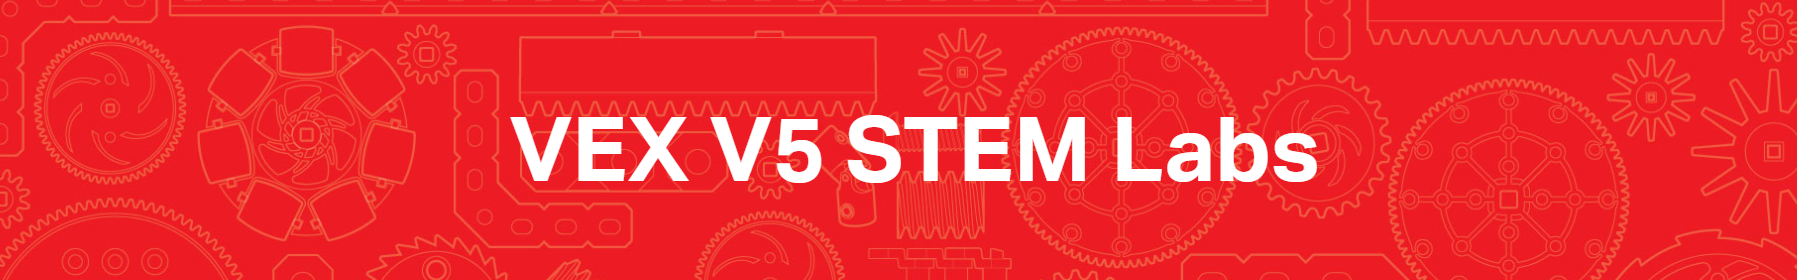 V5_STEM_Lab_banner.png